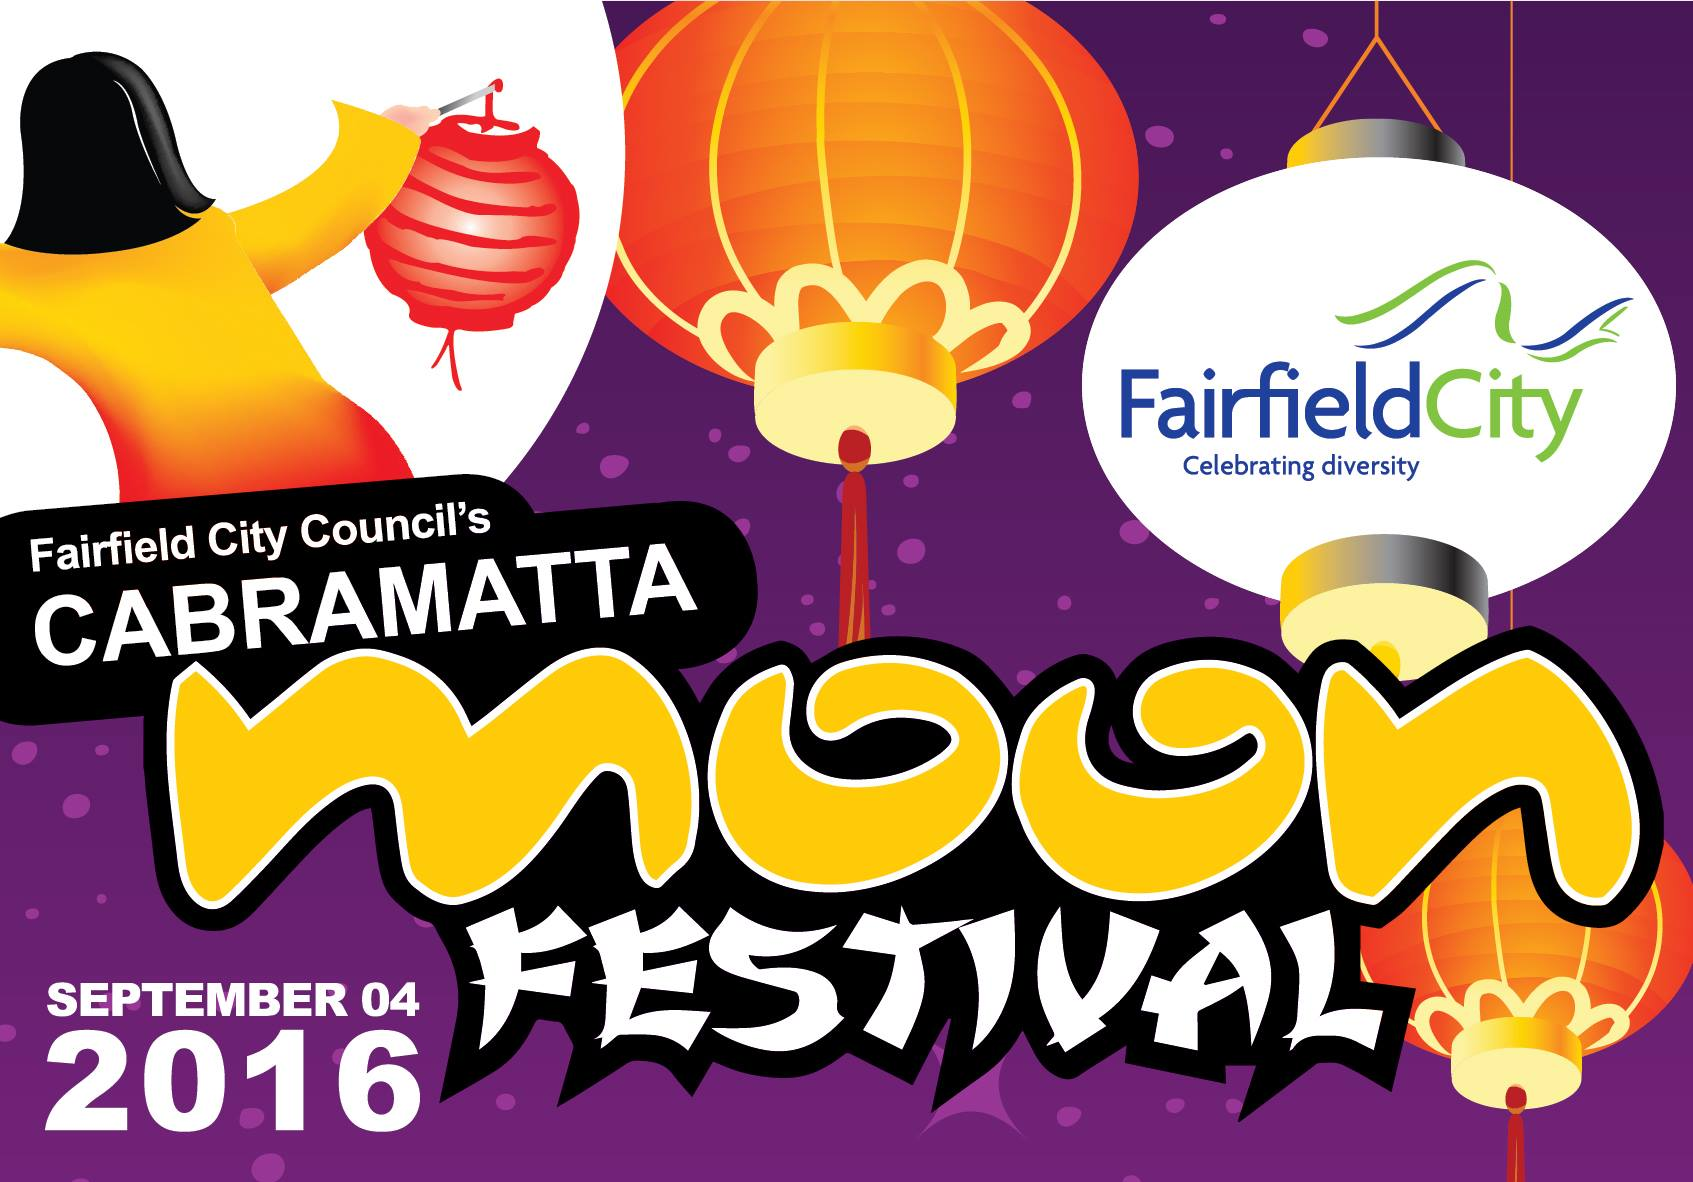 Prince Mak and TIMOMATIC to headline 2016 Cabramatta Moon Festival on September 4th